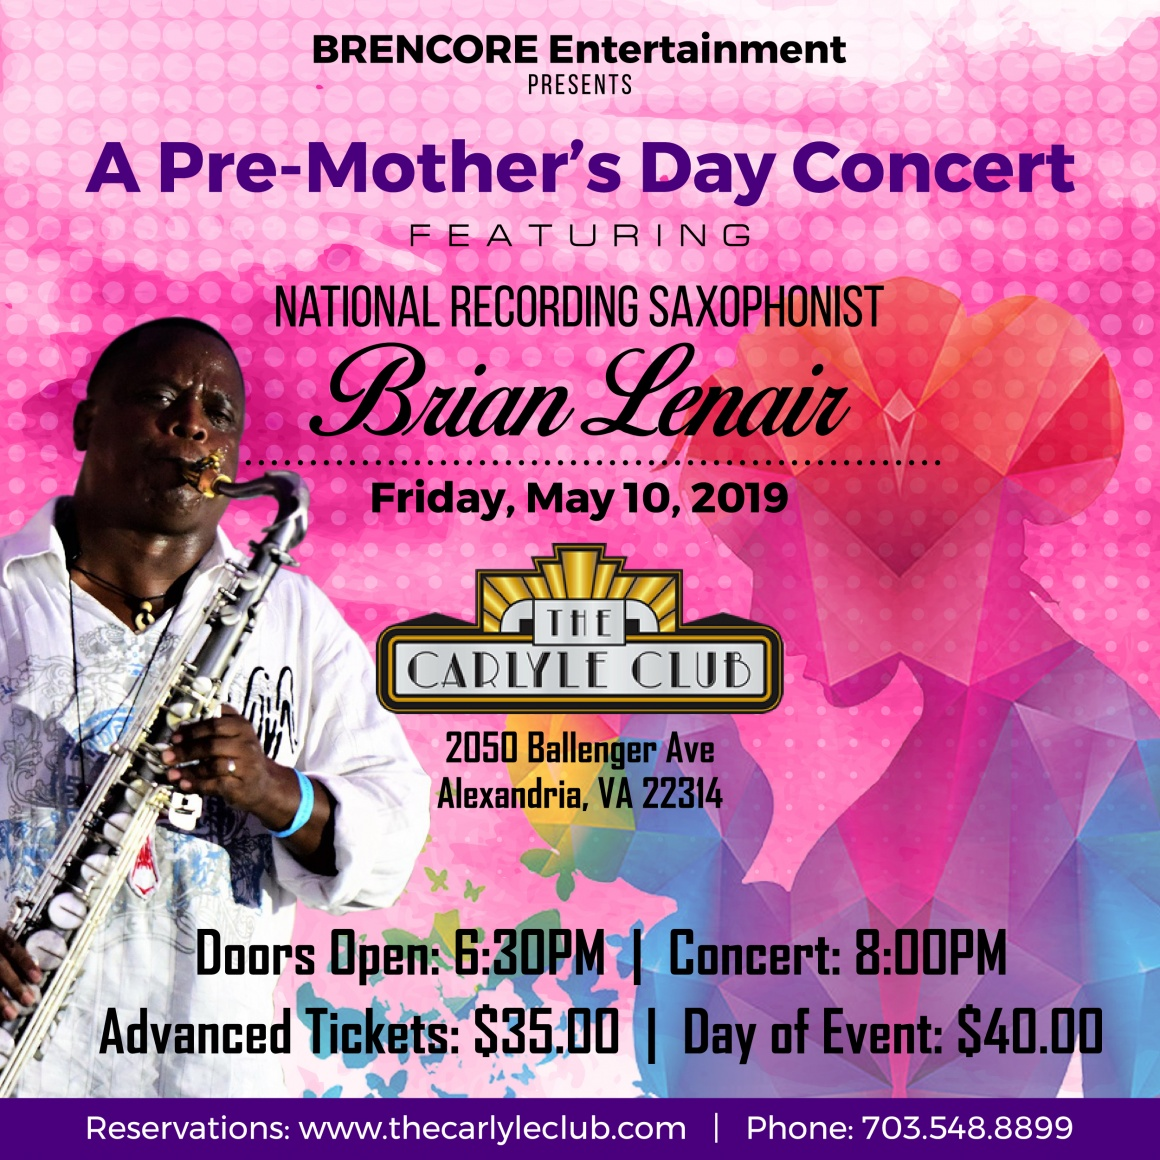 Pre-Mother's Day Concert ft. National Recording Saxophonist Brian Lenair